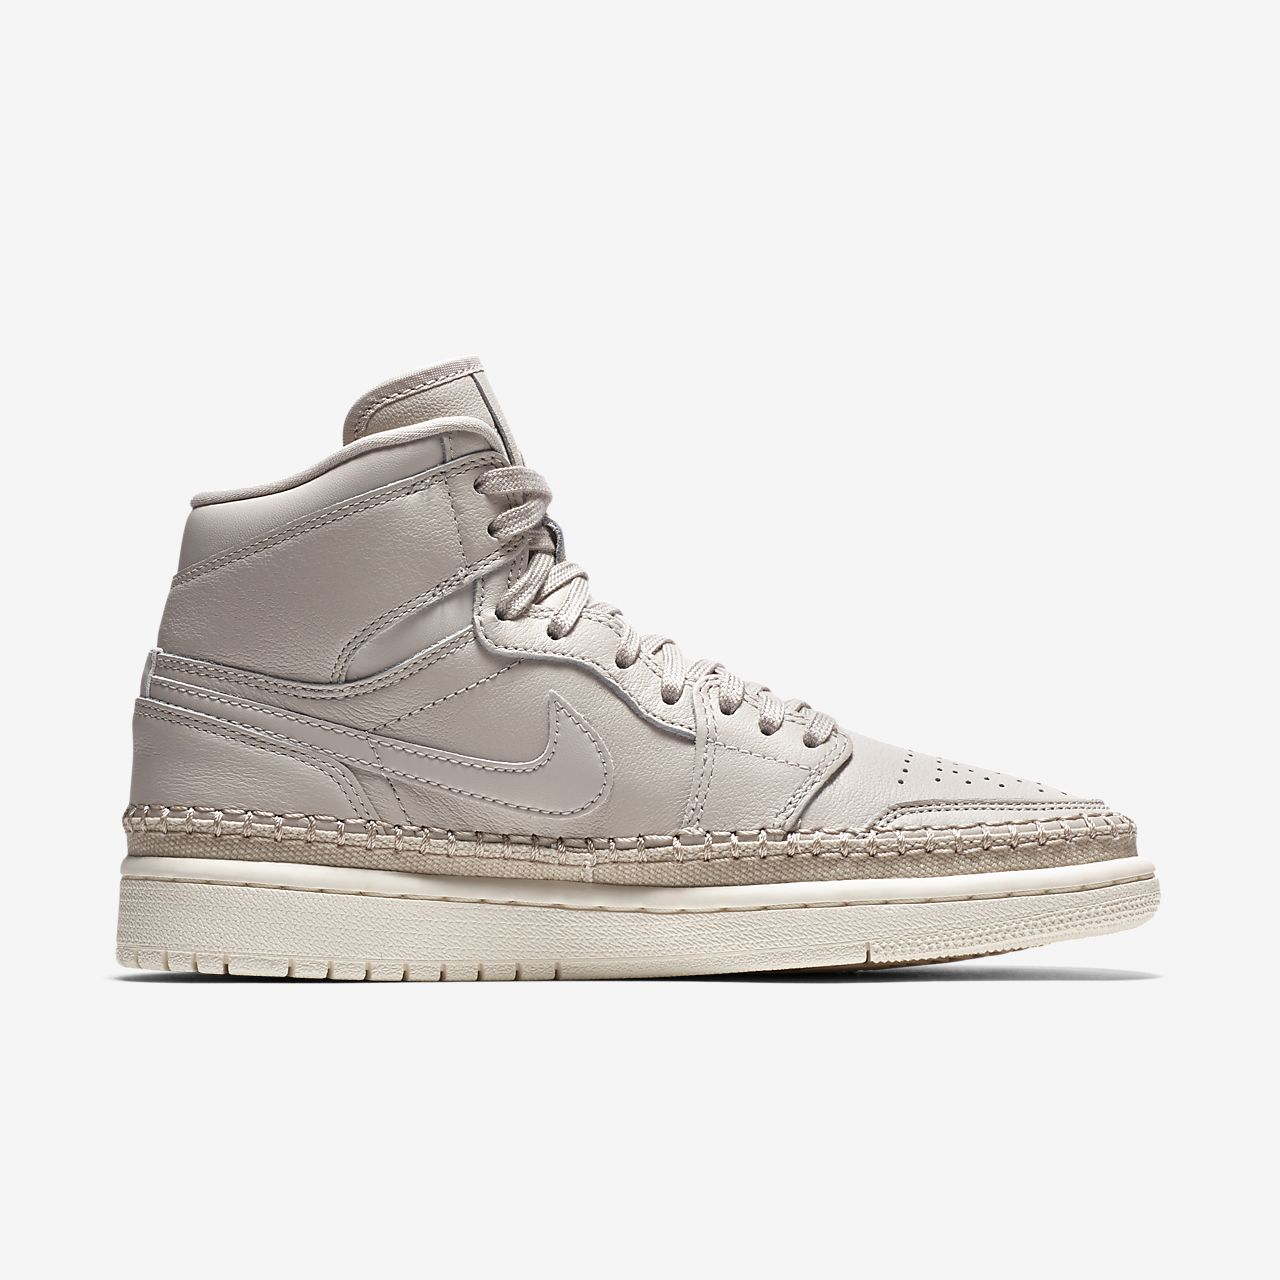 JORDAN WMNS AIR JORDAN RETRO 1 HI PREMIUM free shipping get to buy free shipping pay with visa buy cheap 2014 newest ty1PJpaDa